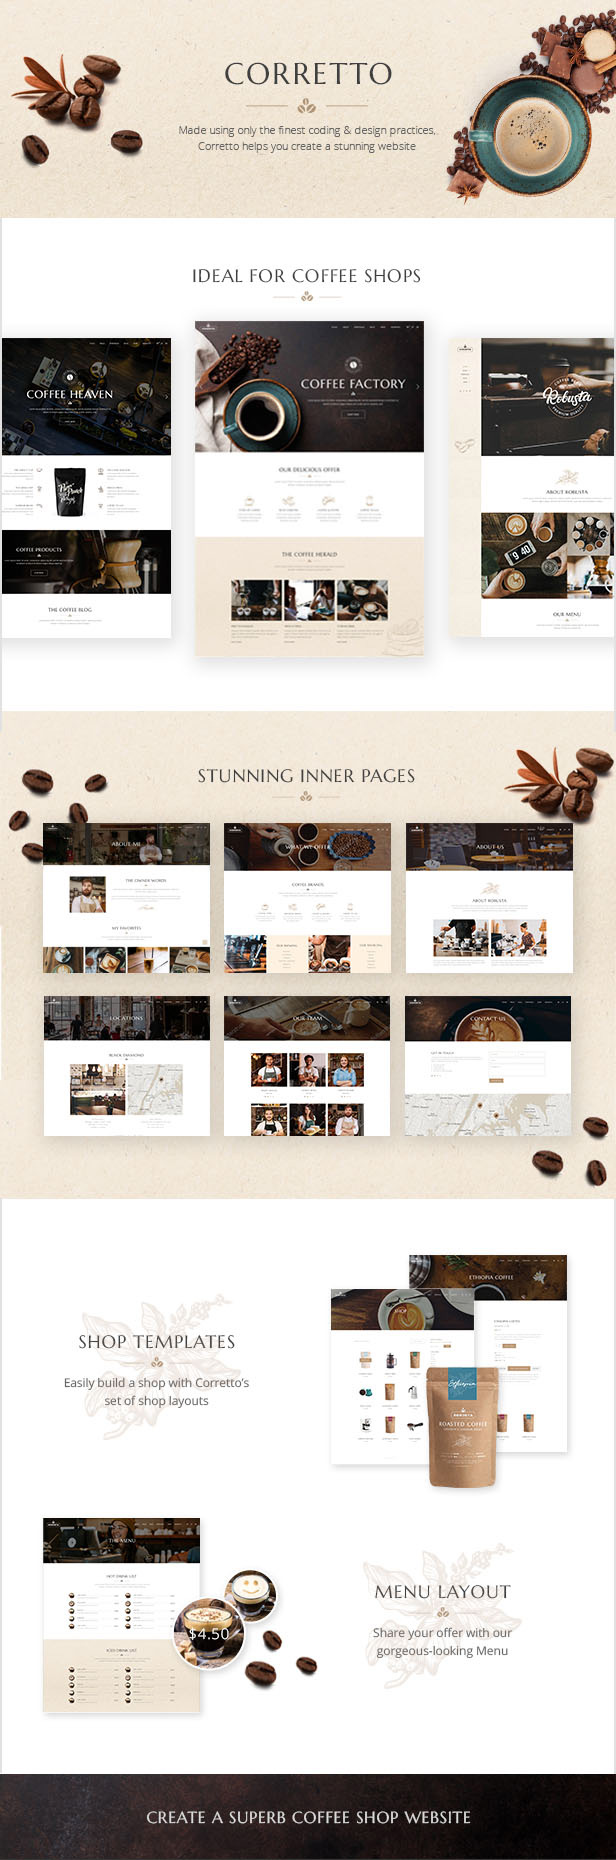 WordPress theme Corretto - A Modern Theme for Coffee Shops and Cafés (Restaurants & Cafes)